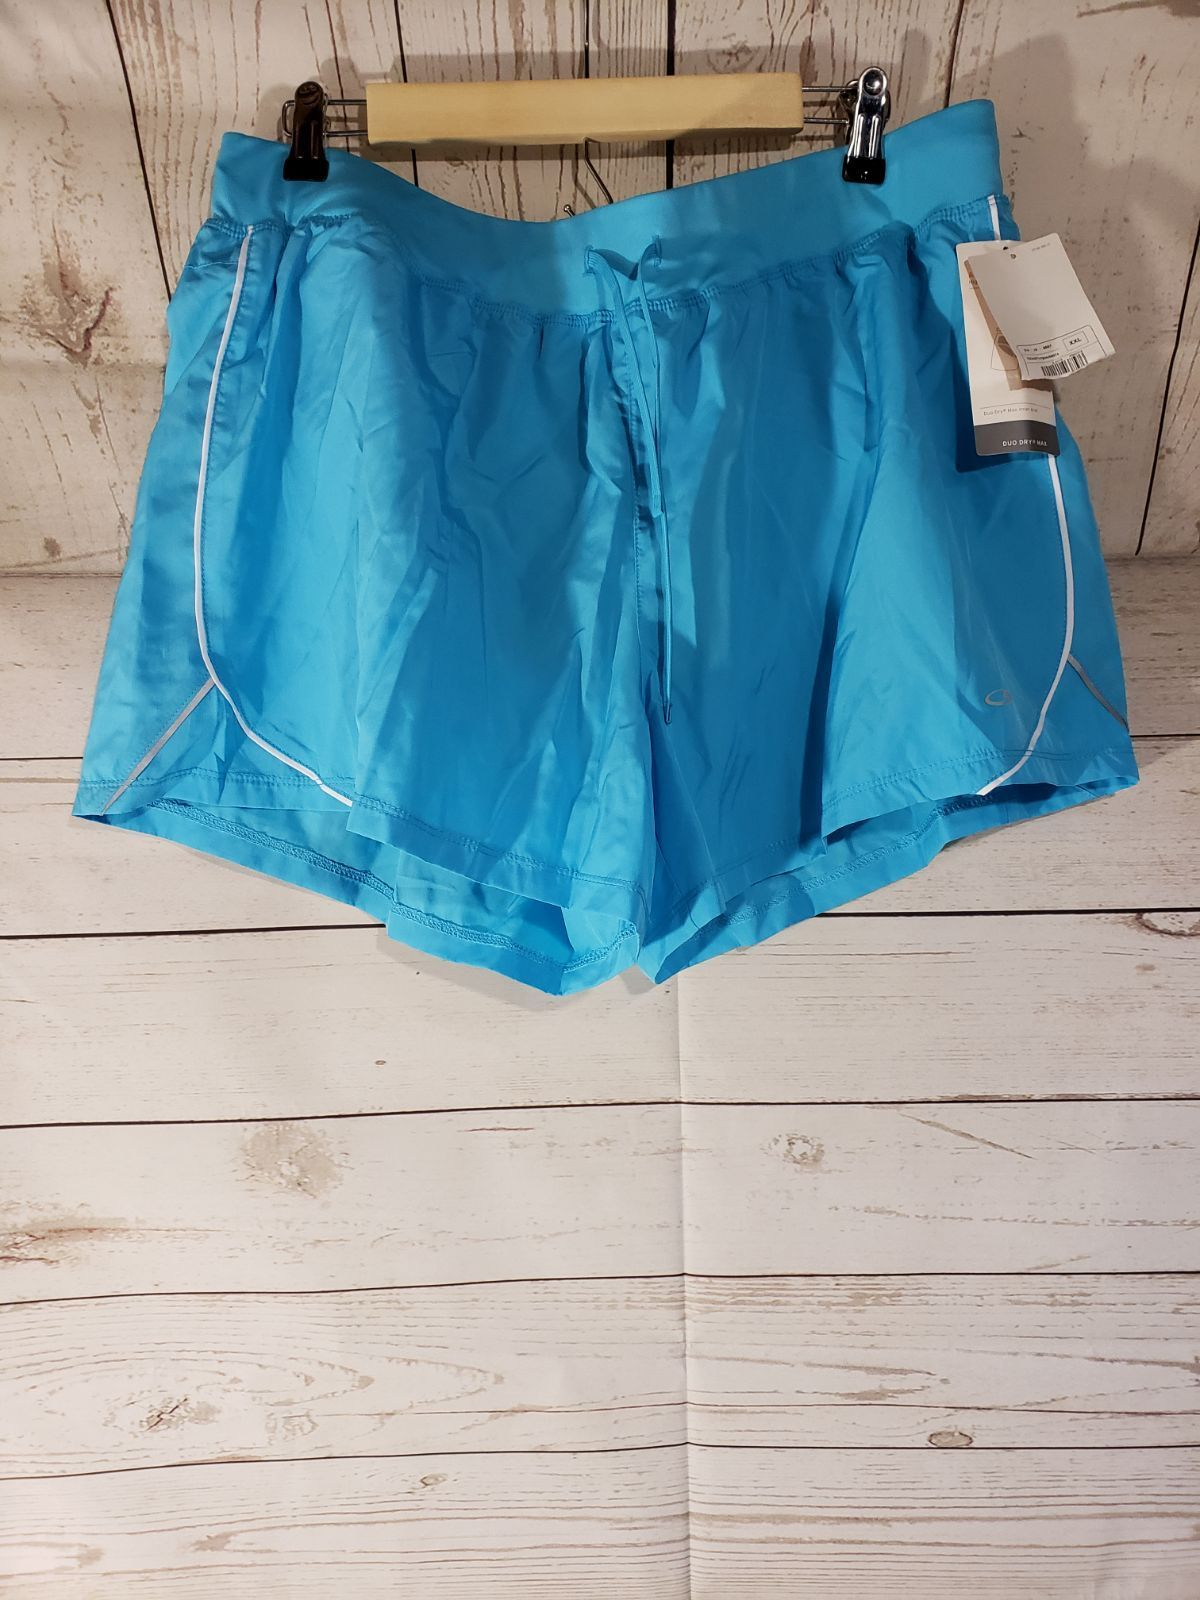 NWT Champion Sz 2XL Light Blue Shorts #lightblueshorts NWT Champion Sz 2XL Light Blue Shorts #lightblueshorts